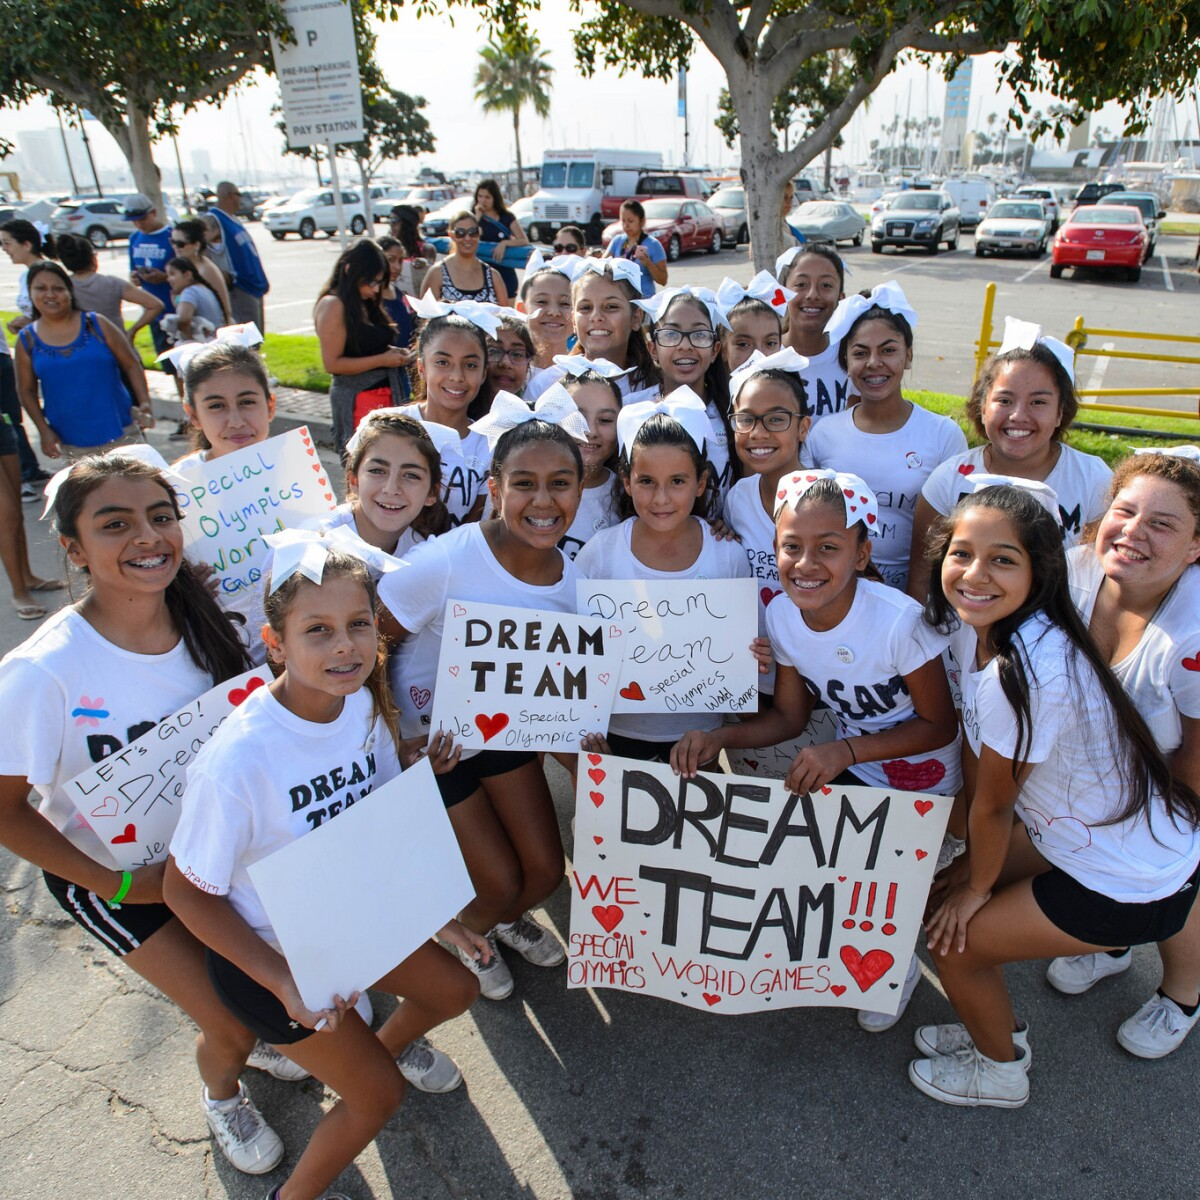 Grants - Dream Team Supporters Smiling at the Half Marathon at the 2015 Summer Games in Los Angeles